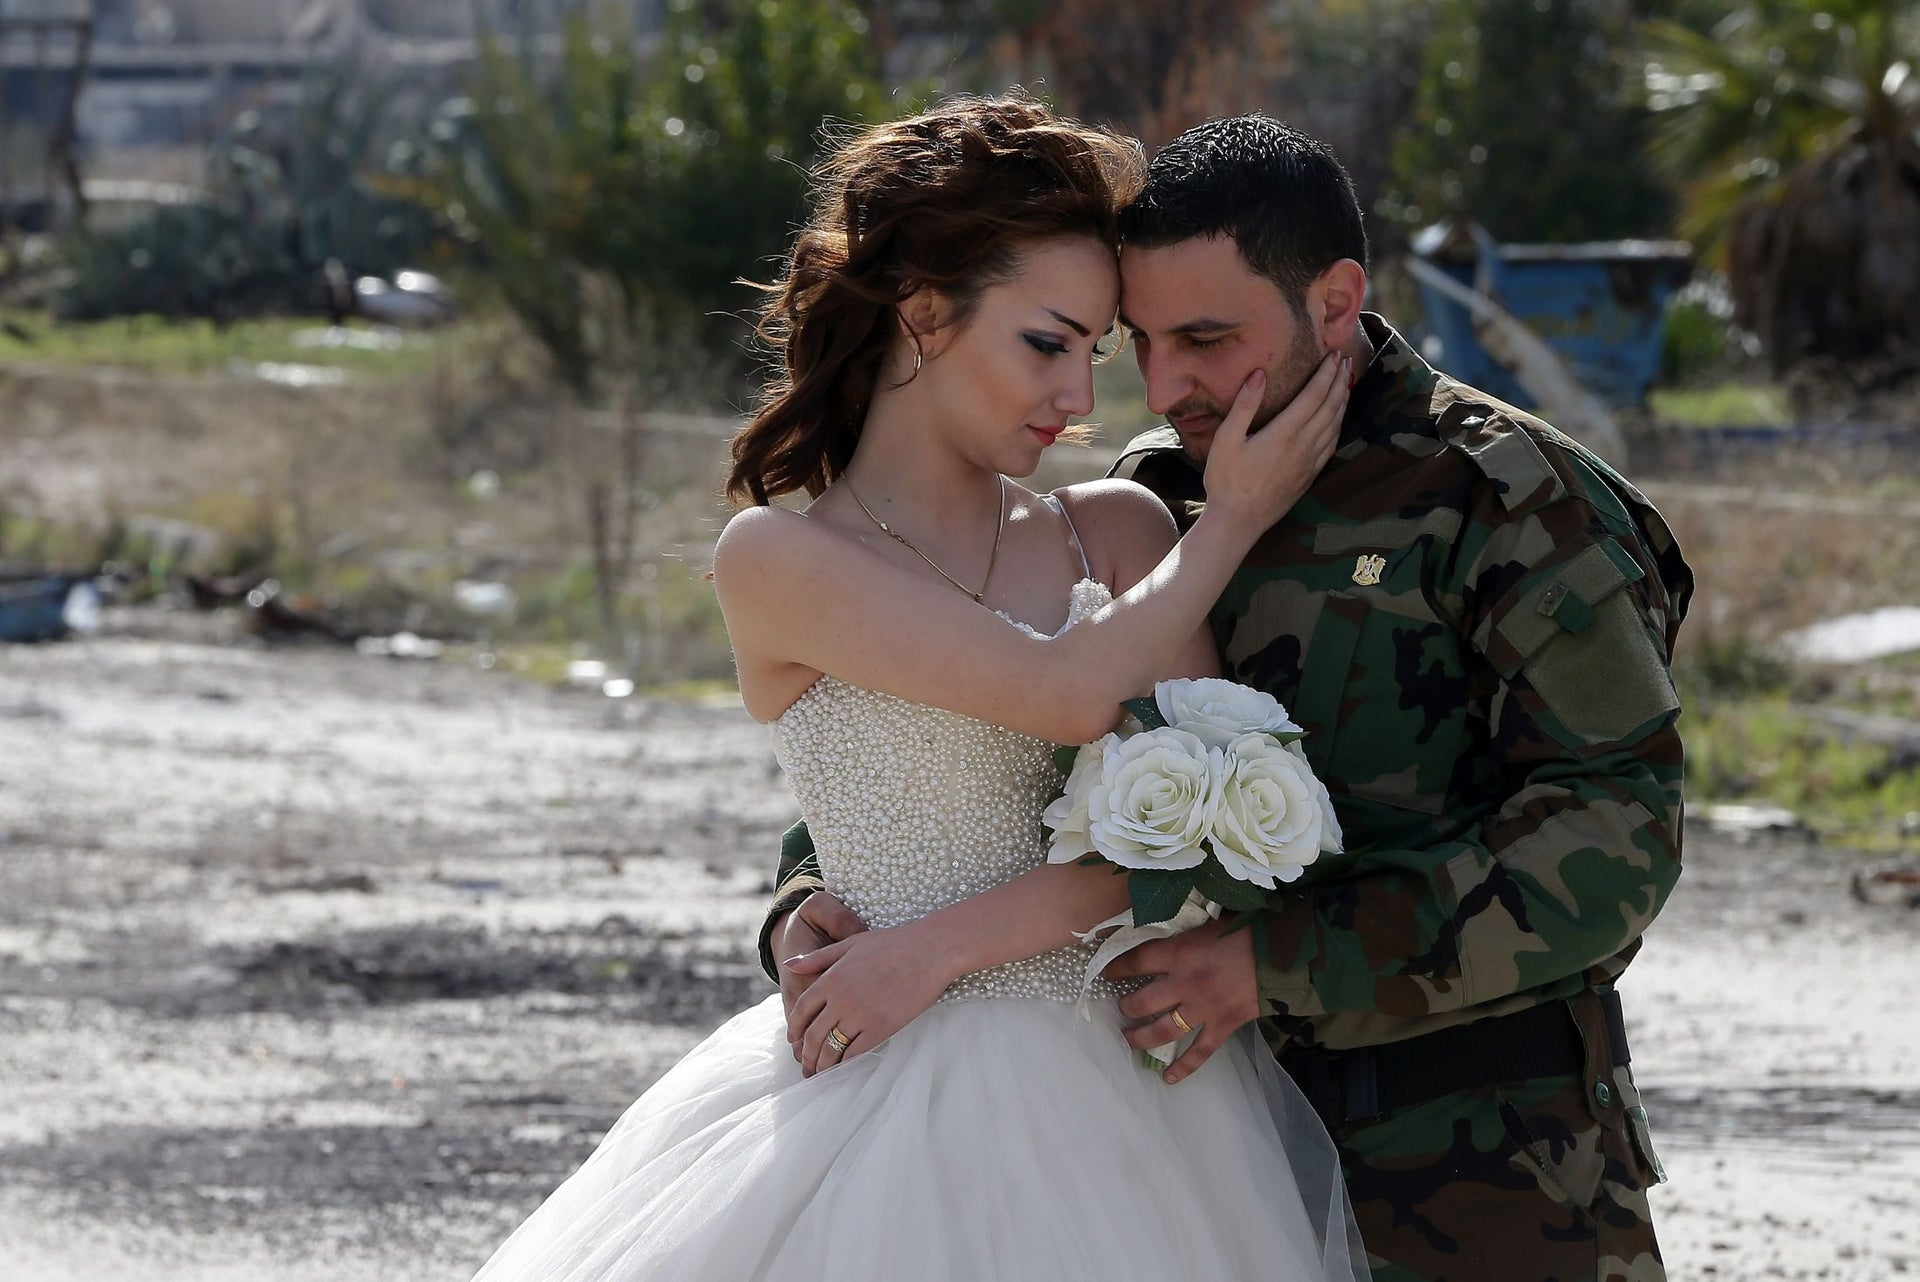 Uniform-clad groom Hassan Youssef and bride Nada Merhi strike a pose in Homs, Syria, on February 5, 2016.